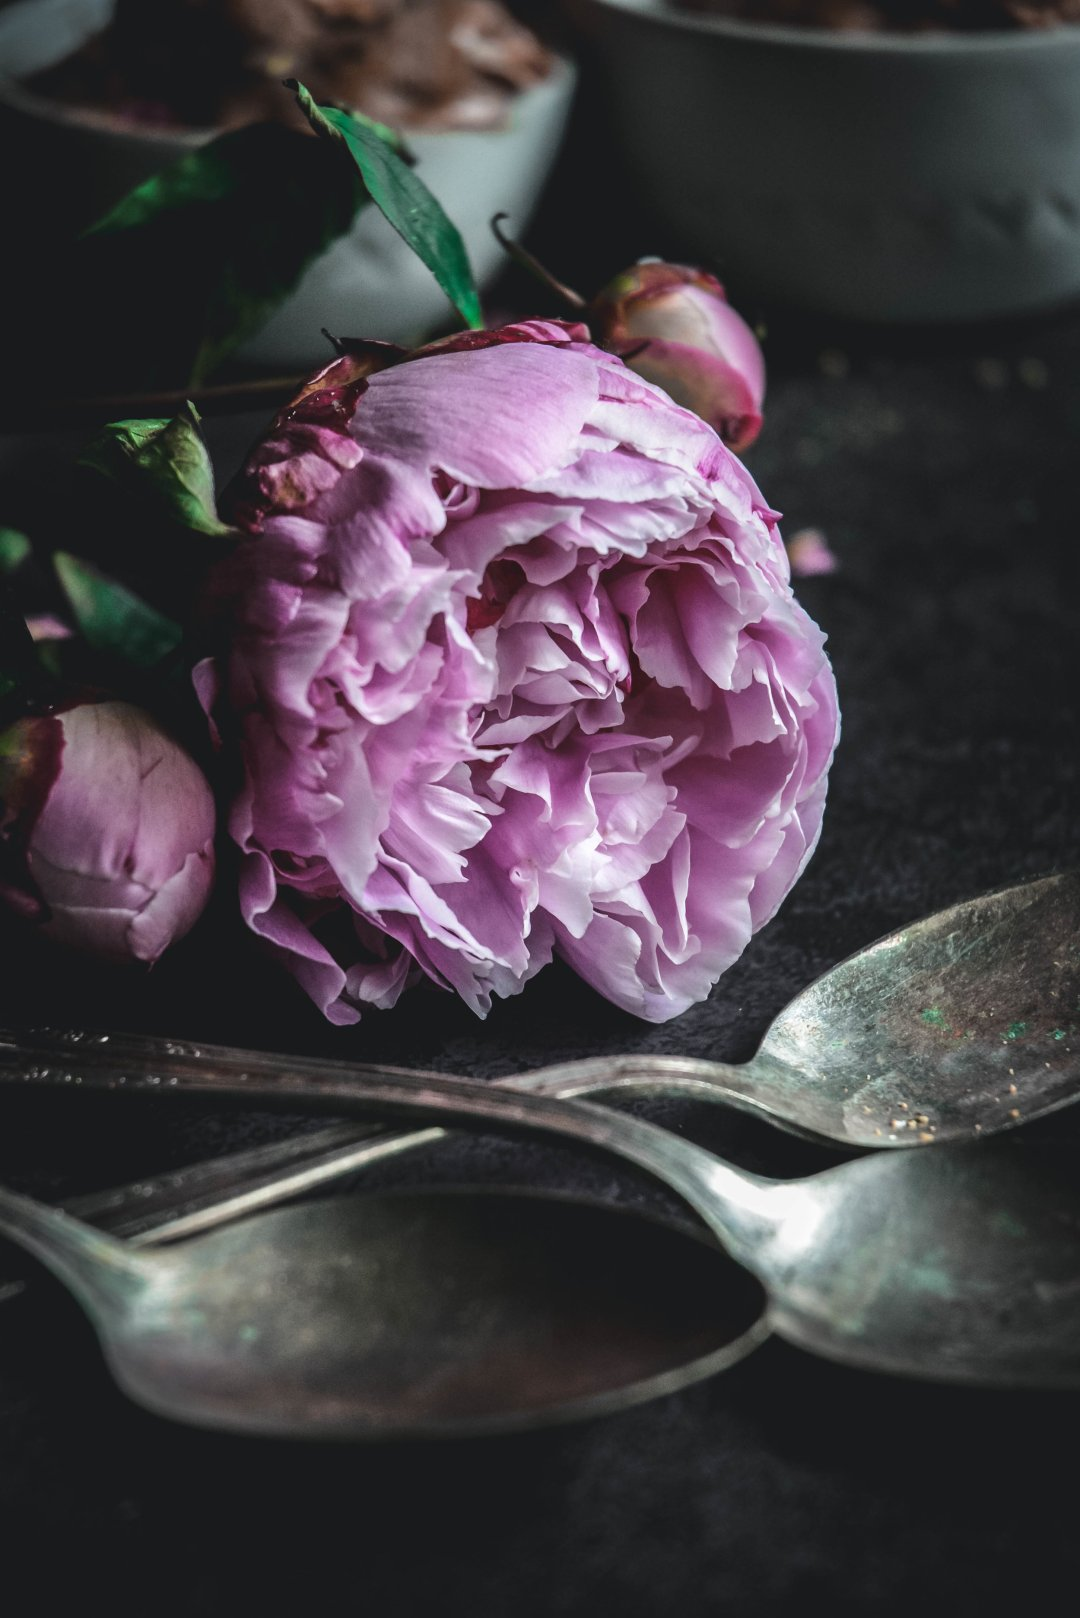 peony and spoons on table